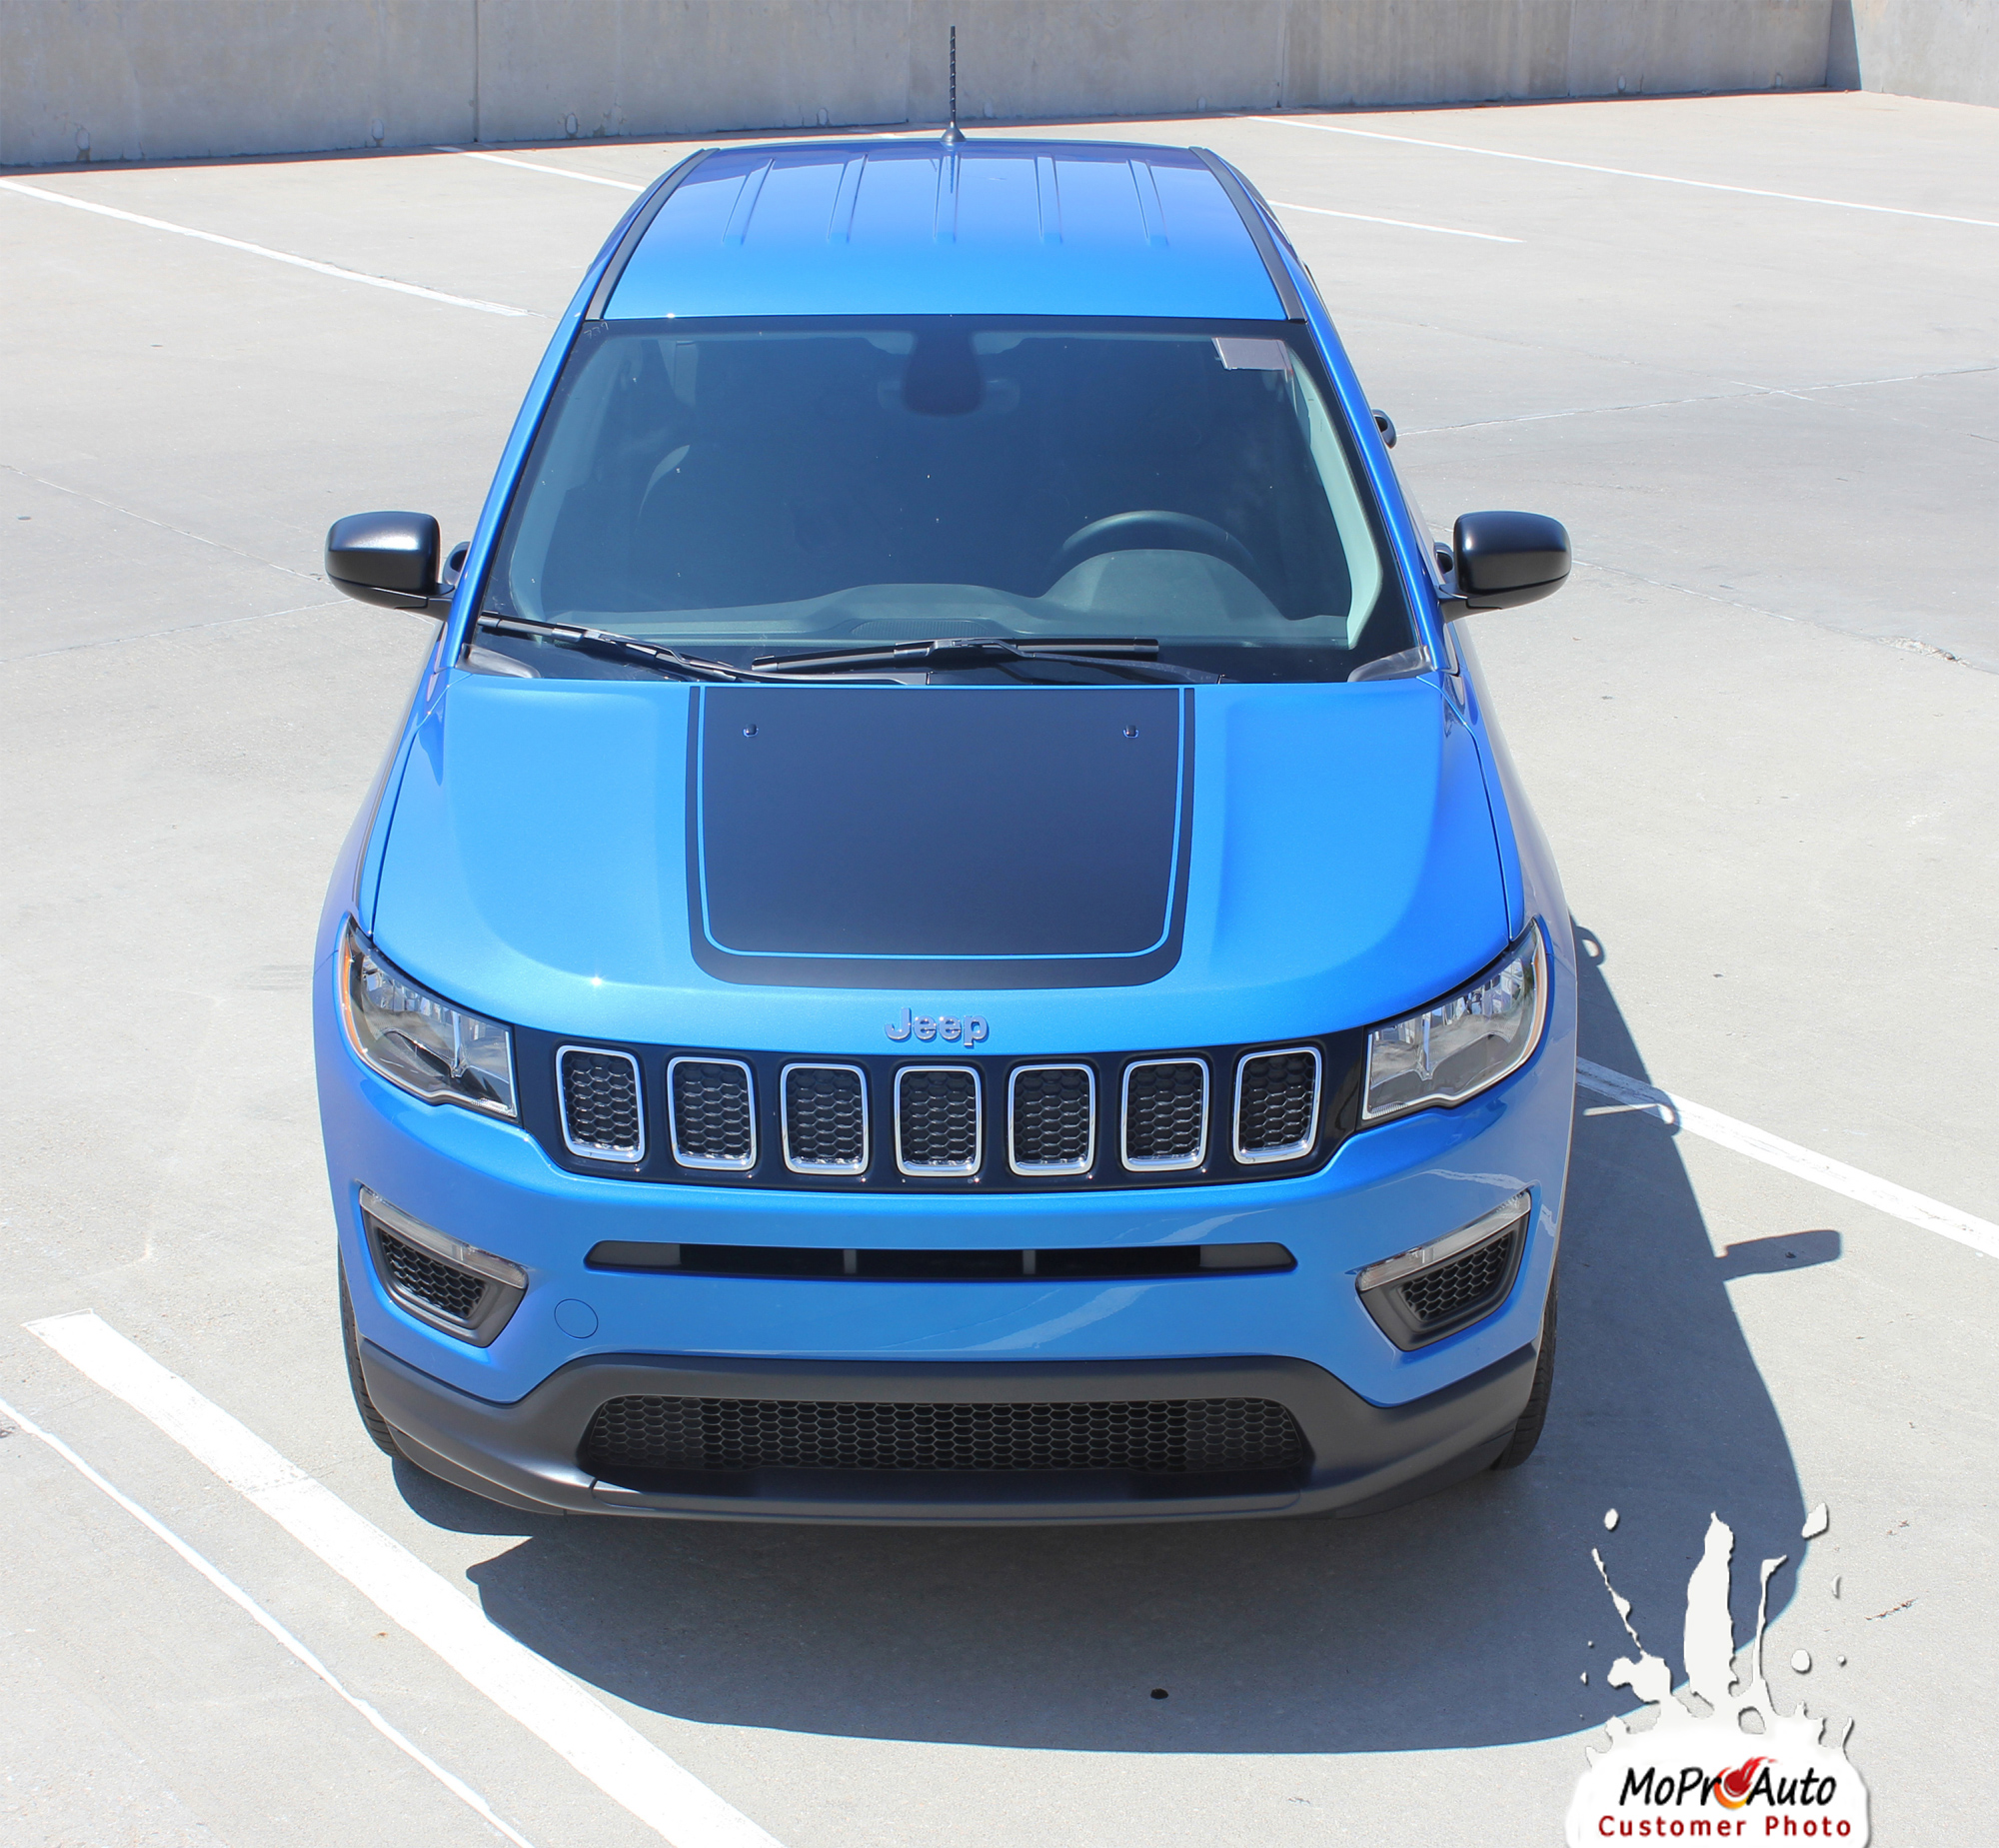 2017, 2018, 2019, 2020 Jeep Compass Vinyl Graphics Decals Stripes | Customer Photo Bearing